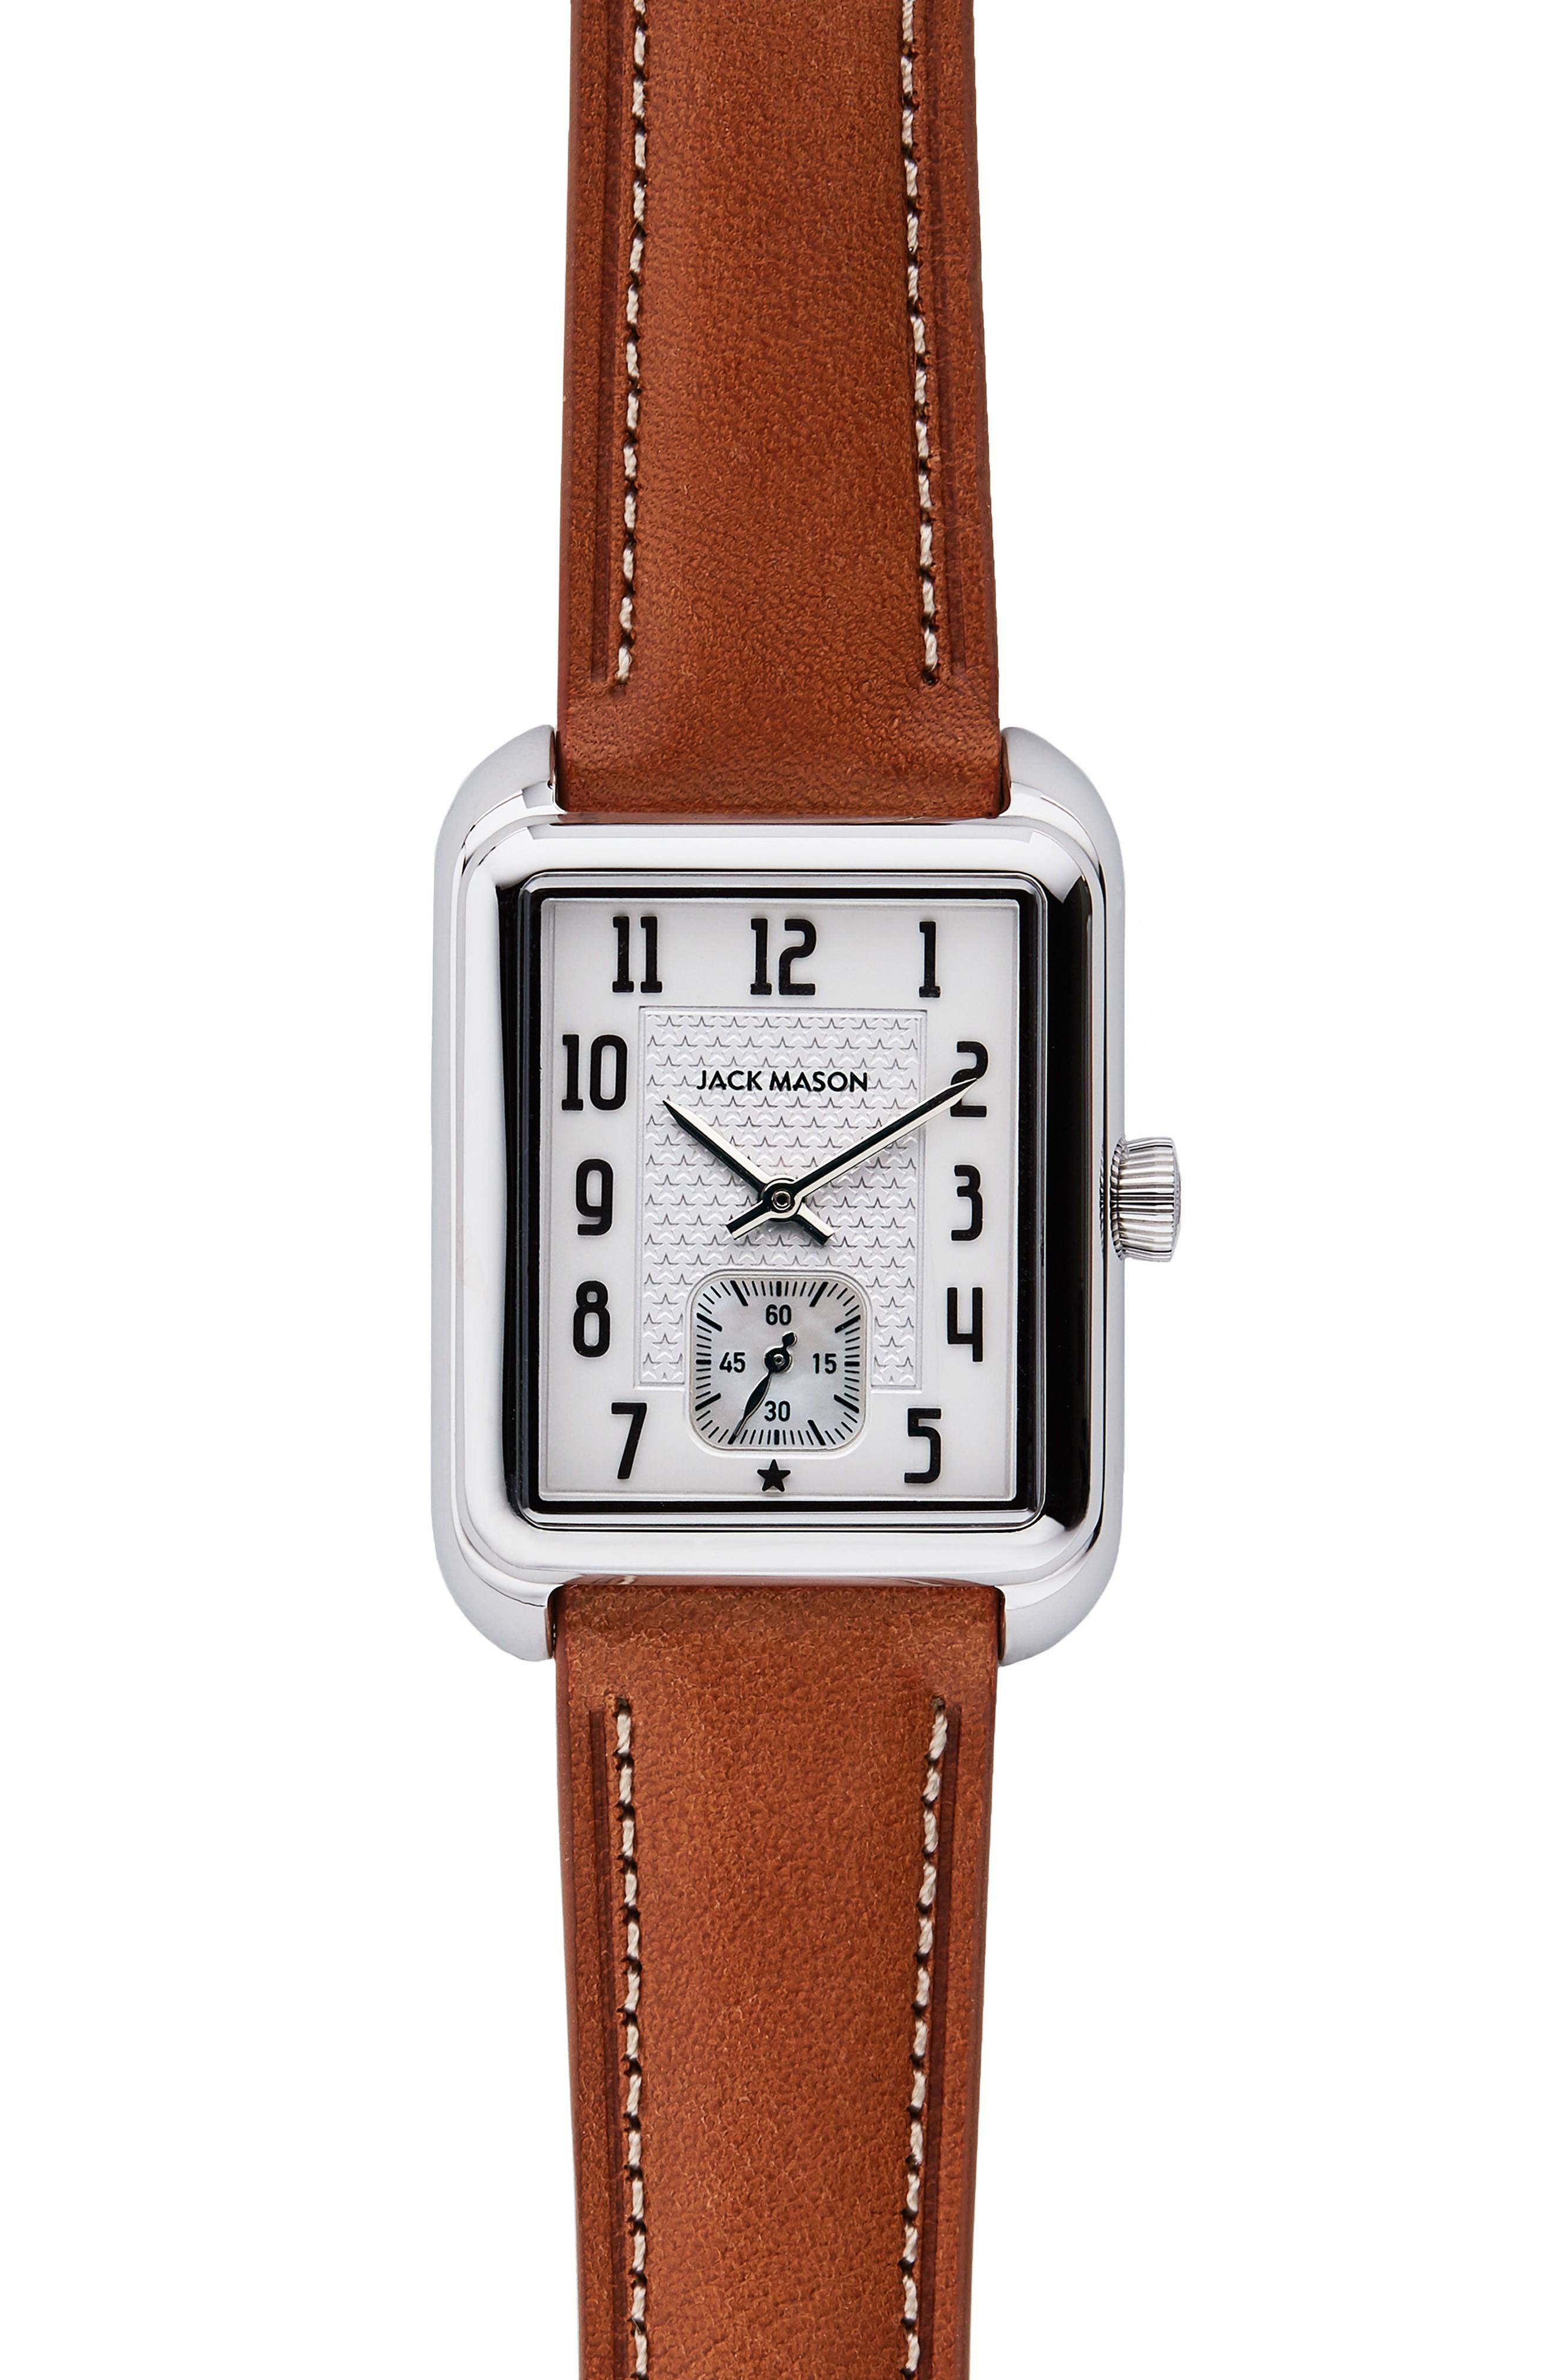 Jack Mason Issue No. 2 Leather Strap Watch, 34mm X 28mm In Tan/ White/ Silver